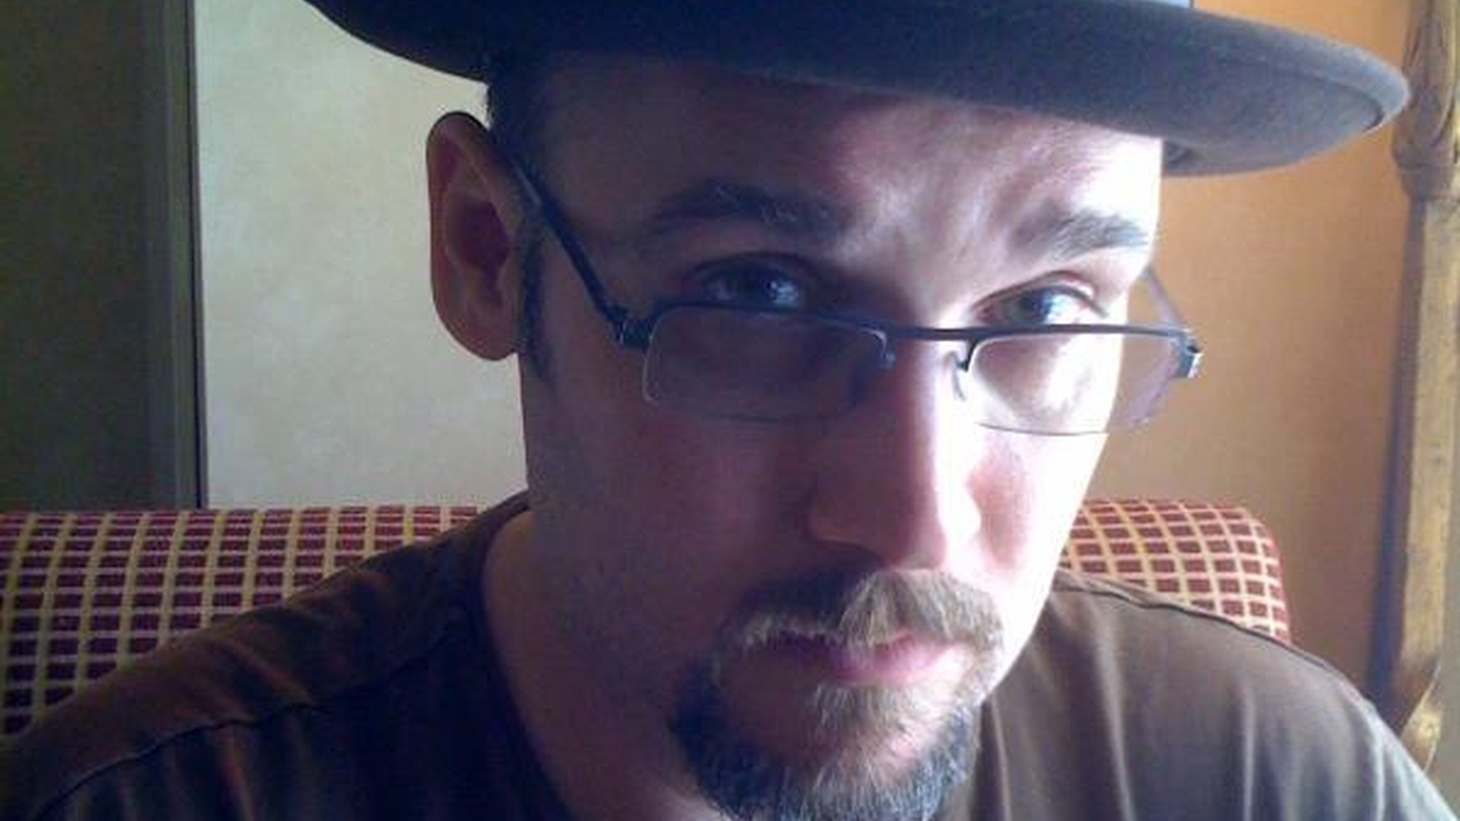 In honor of Comic Con, we wanted to revisit our Guest DJ Project set with award-winning comic book writer and graphic novelist Ed Brubaker. He does not shy away from dark themes in his work - or his song picks.